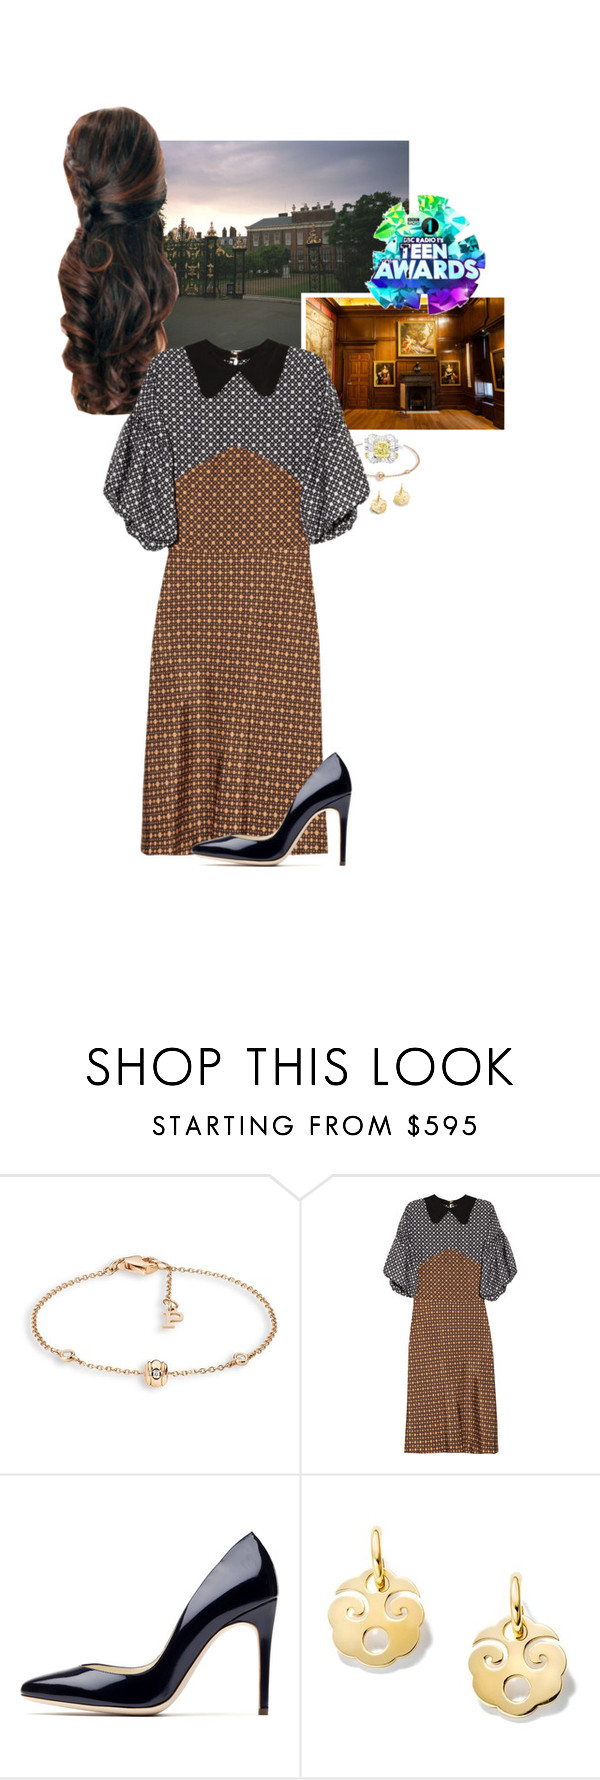 """""""Untitled #2257"""" by duchessq ❤ liked on Polyvore featuring Piaget, Marni and Rupert Sanderson"""